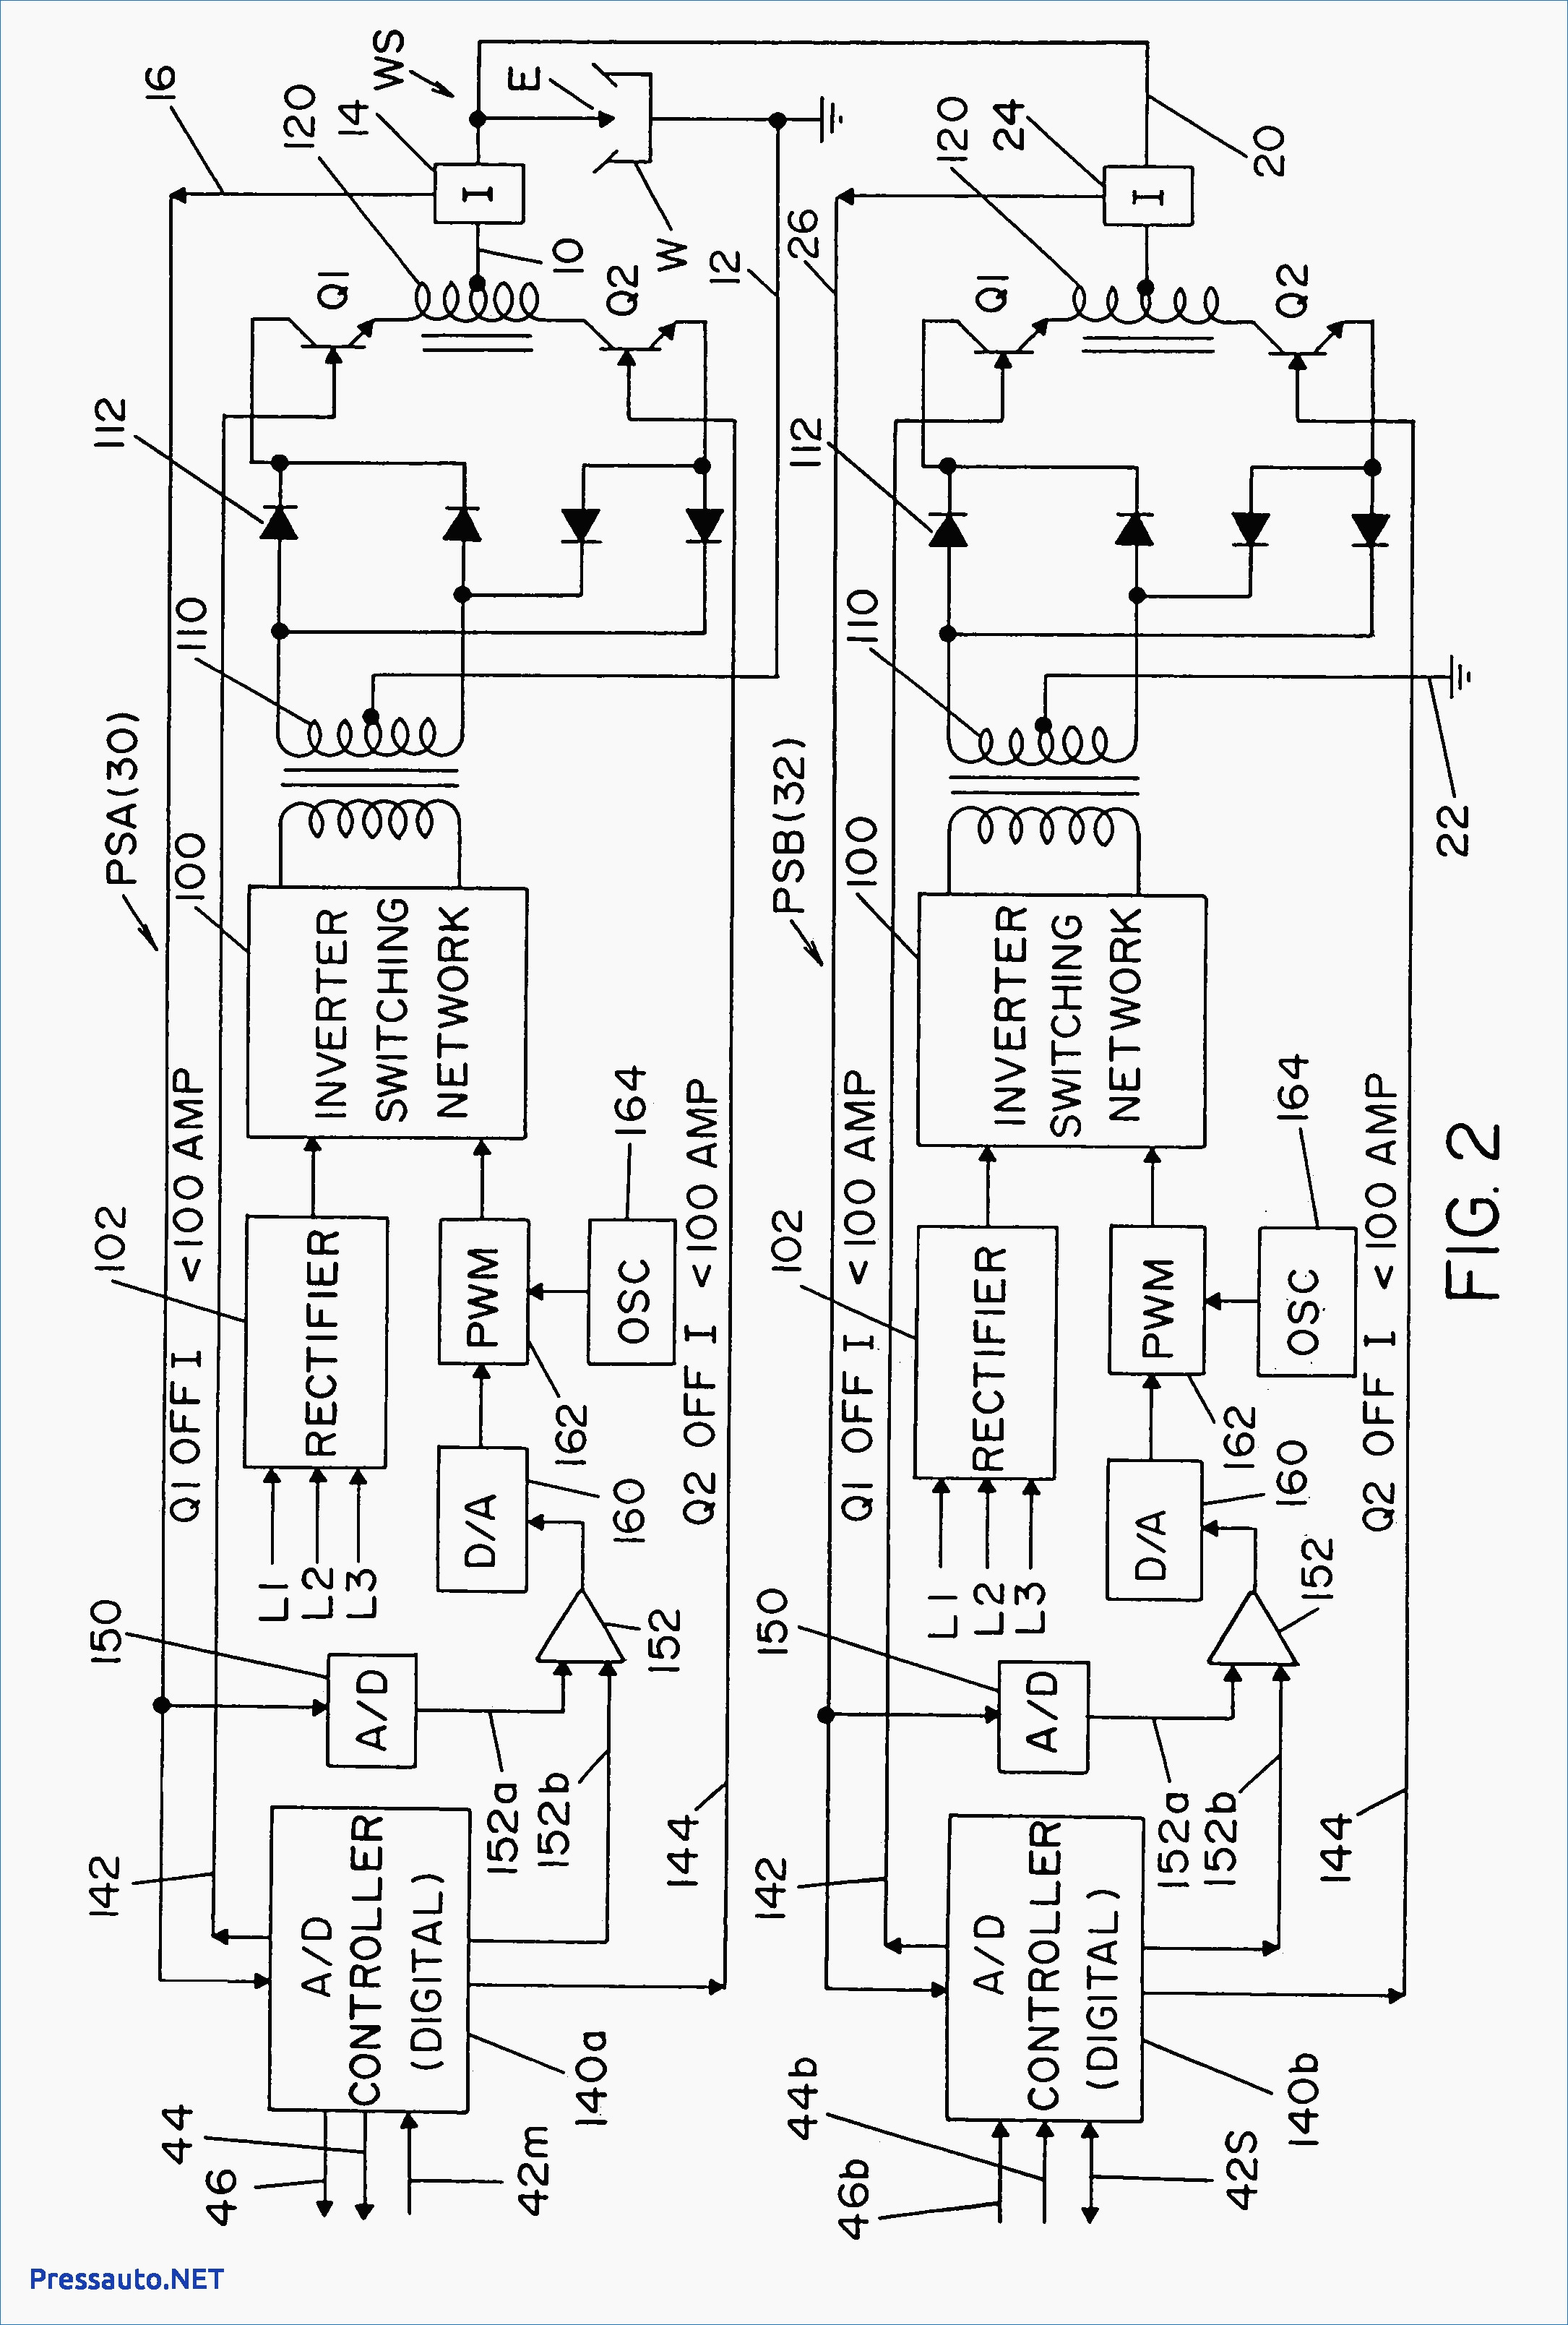 Lincoln Weldanpower 225 Wiring Diagram | Wiring Diagram - Lincoln 225 Arc Welder Wiring Diagram